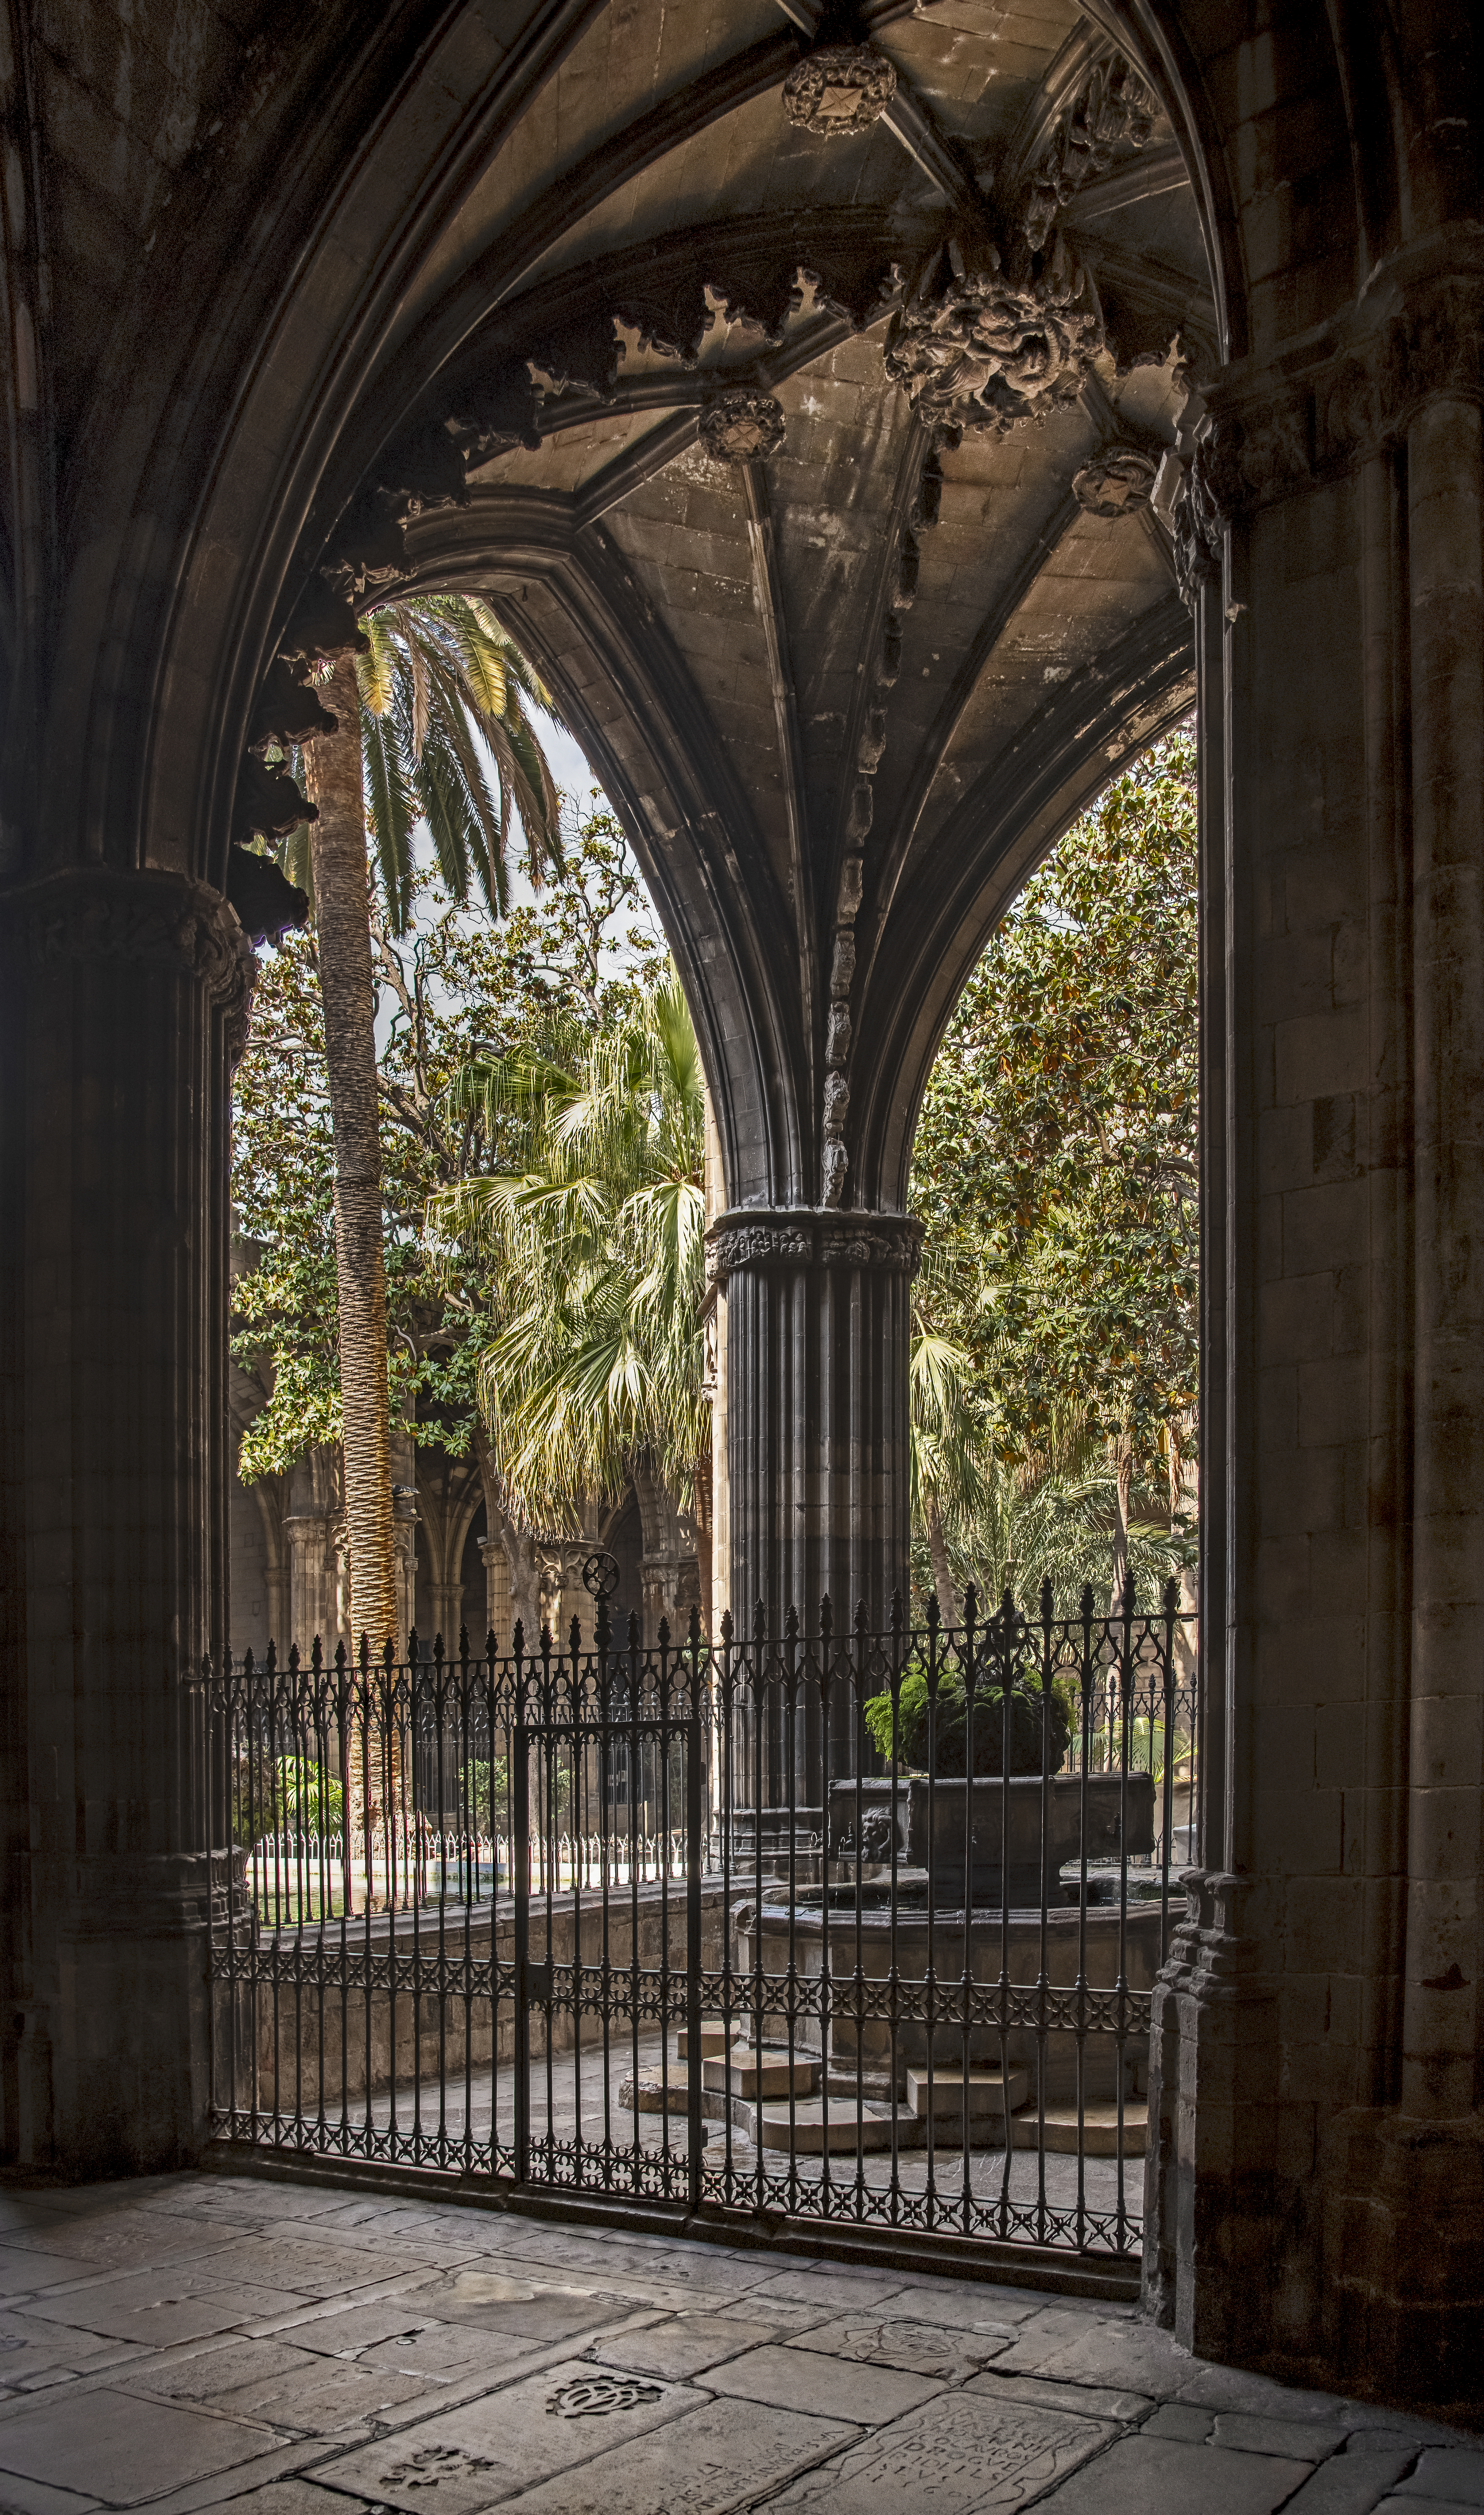 file barcelona cathedral the fountain of the cloister jpg wikimedia commons file barcelona cathedral the fountain of the cloister jpg wikimedia commons